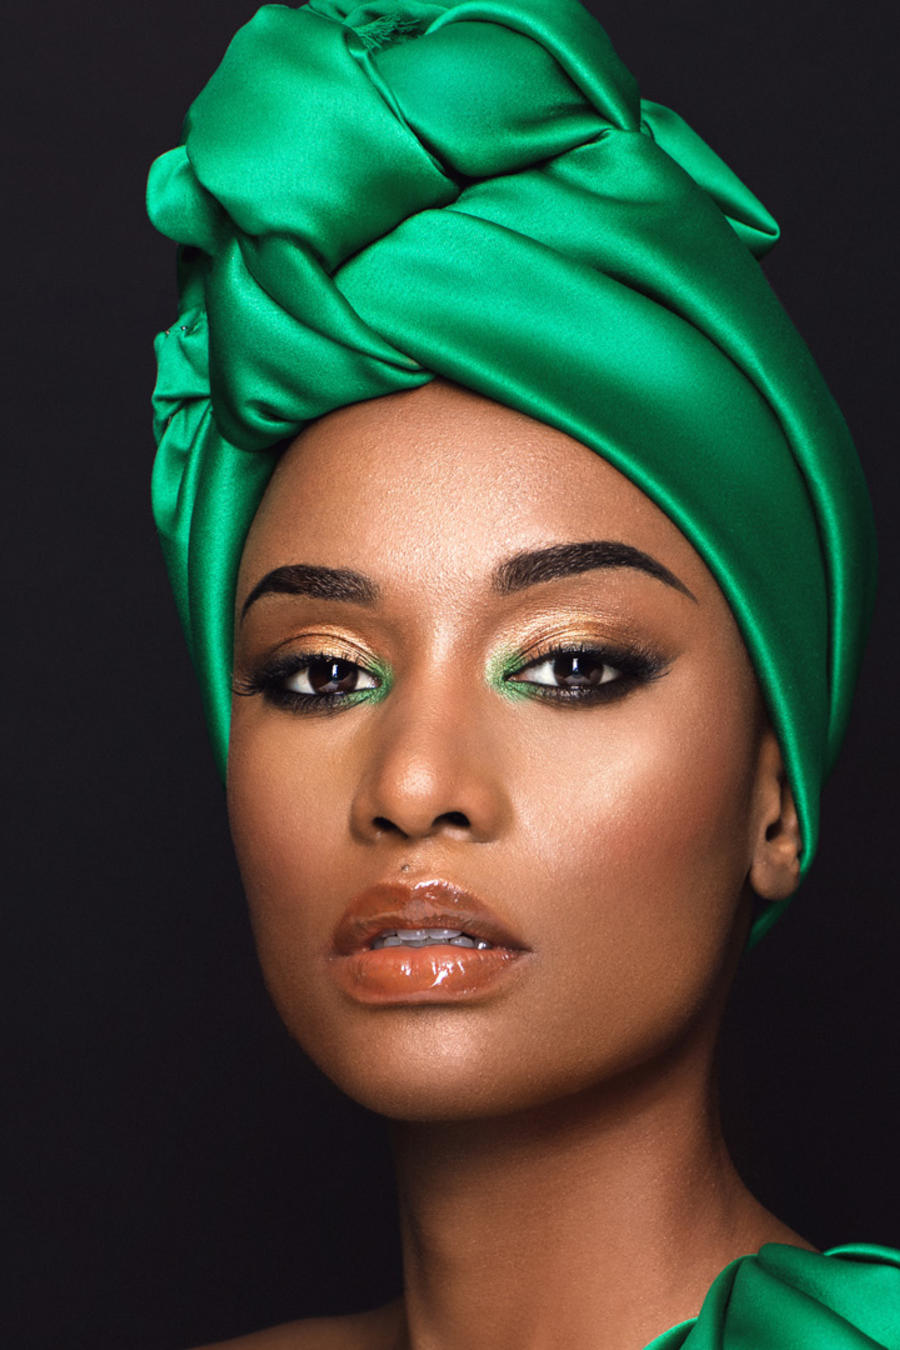 5 Facts You Need to Know About Zozibini Tunzi Miss Universe 2019